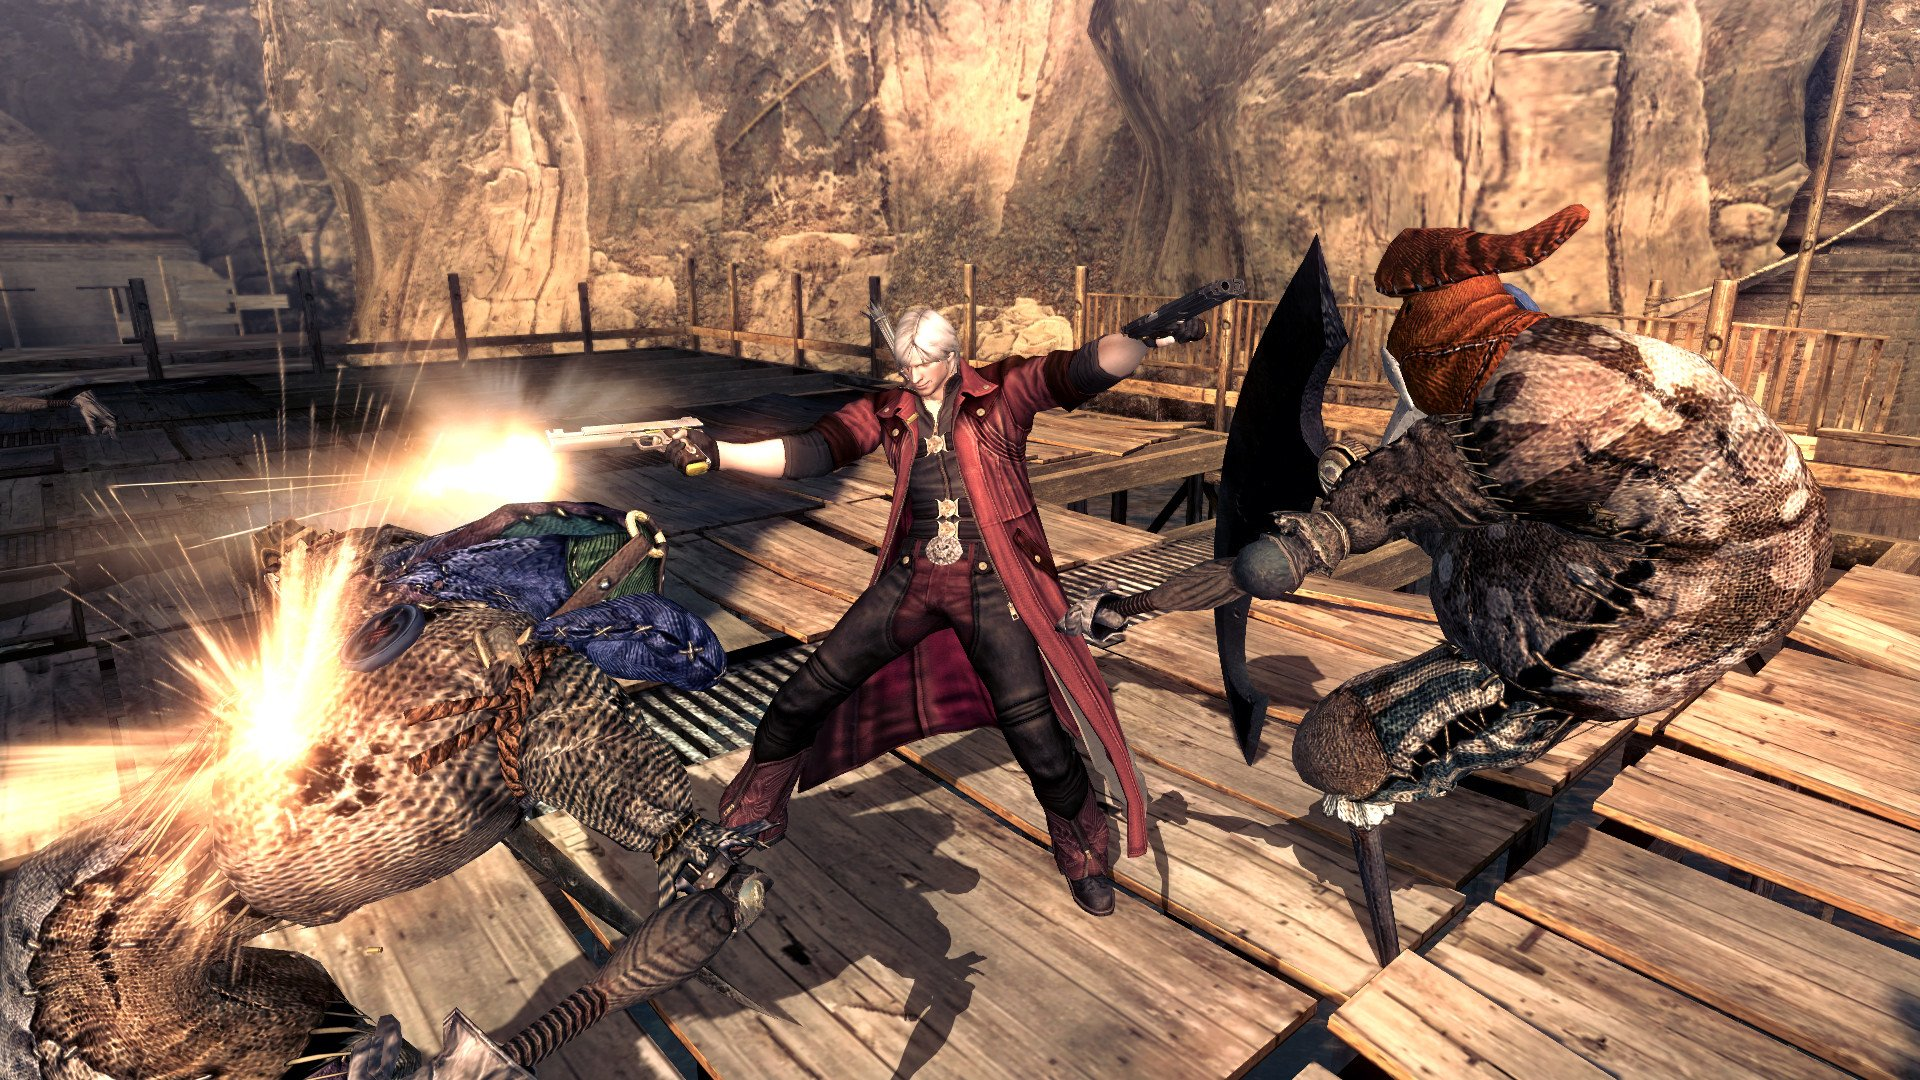 devil_may_cry_4_special_edition-2737783